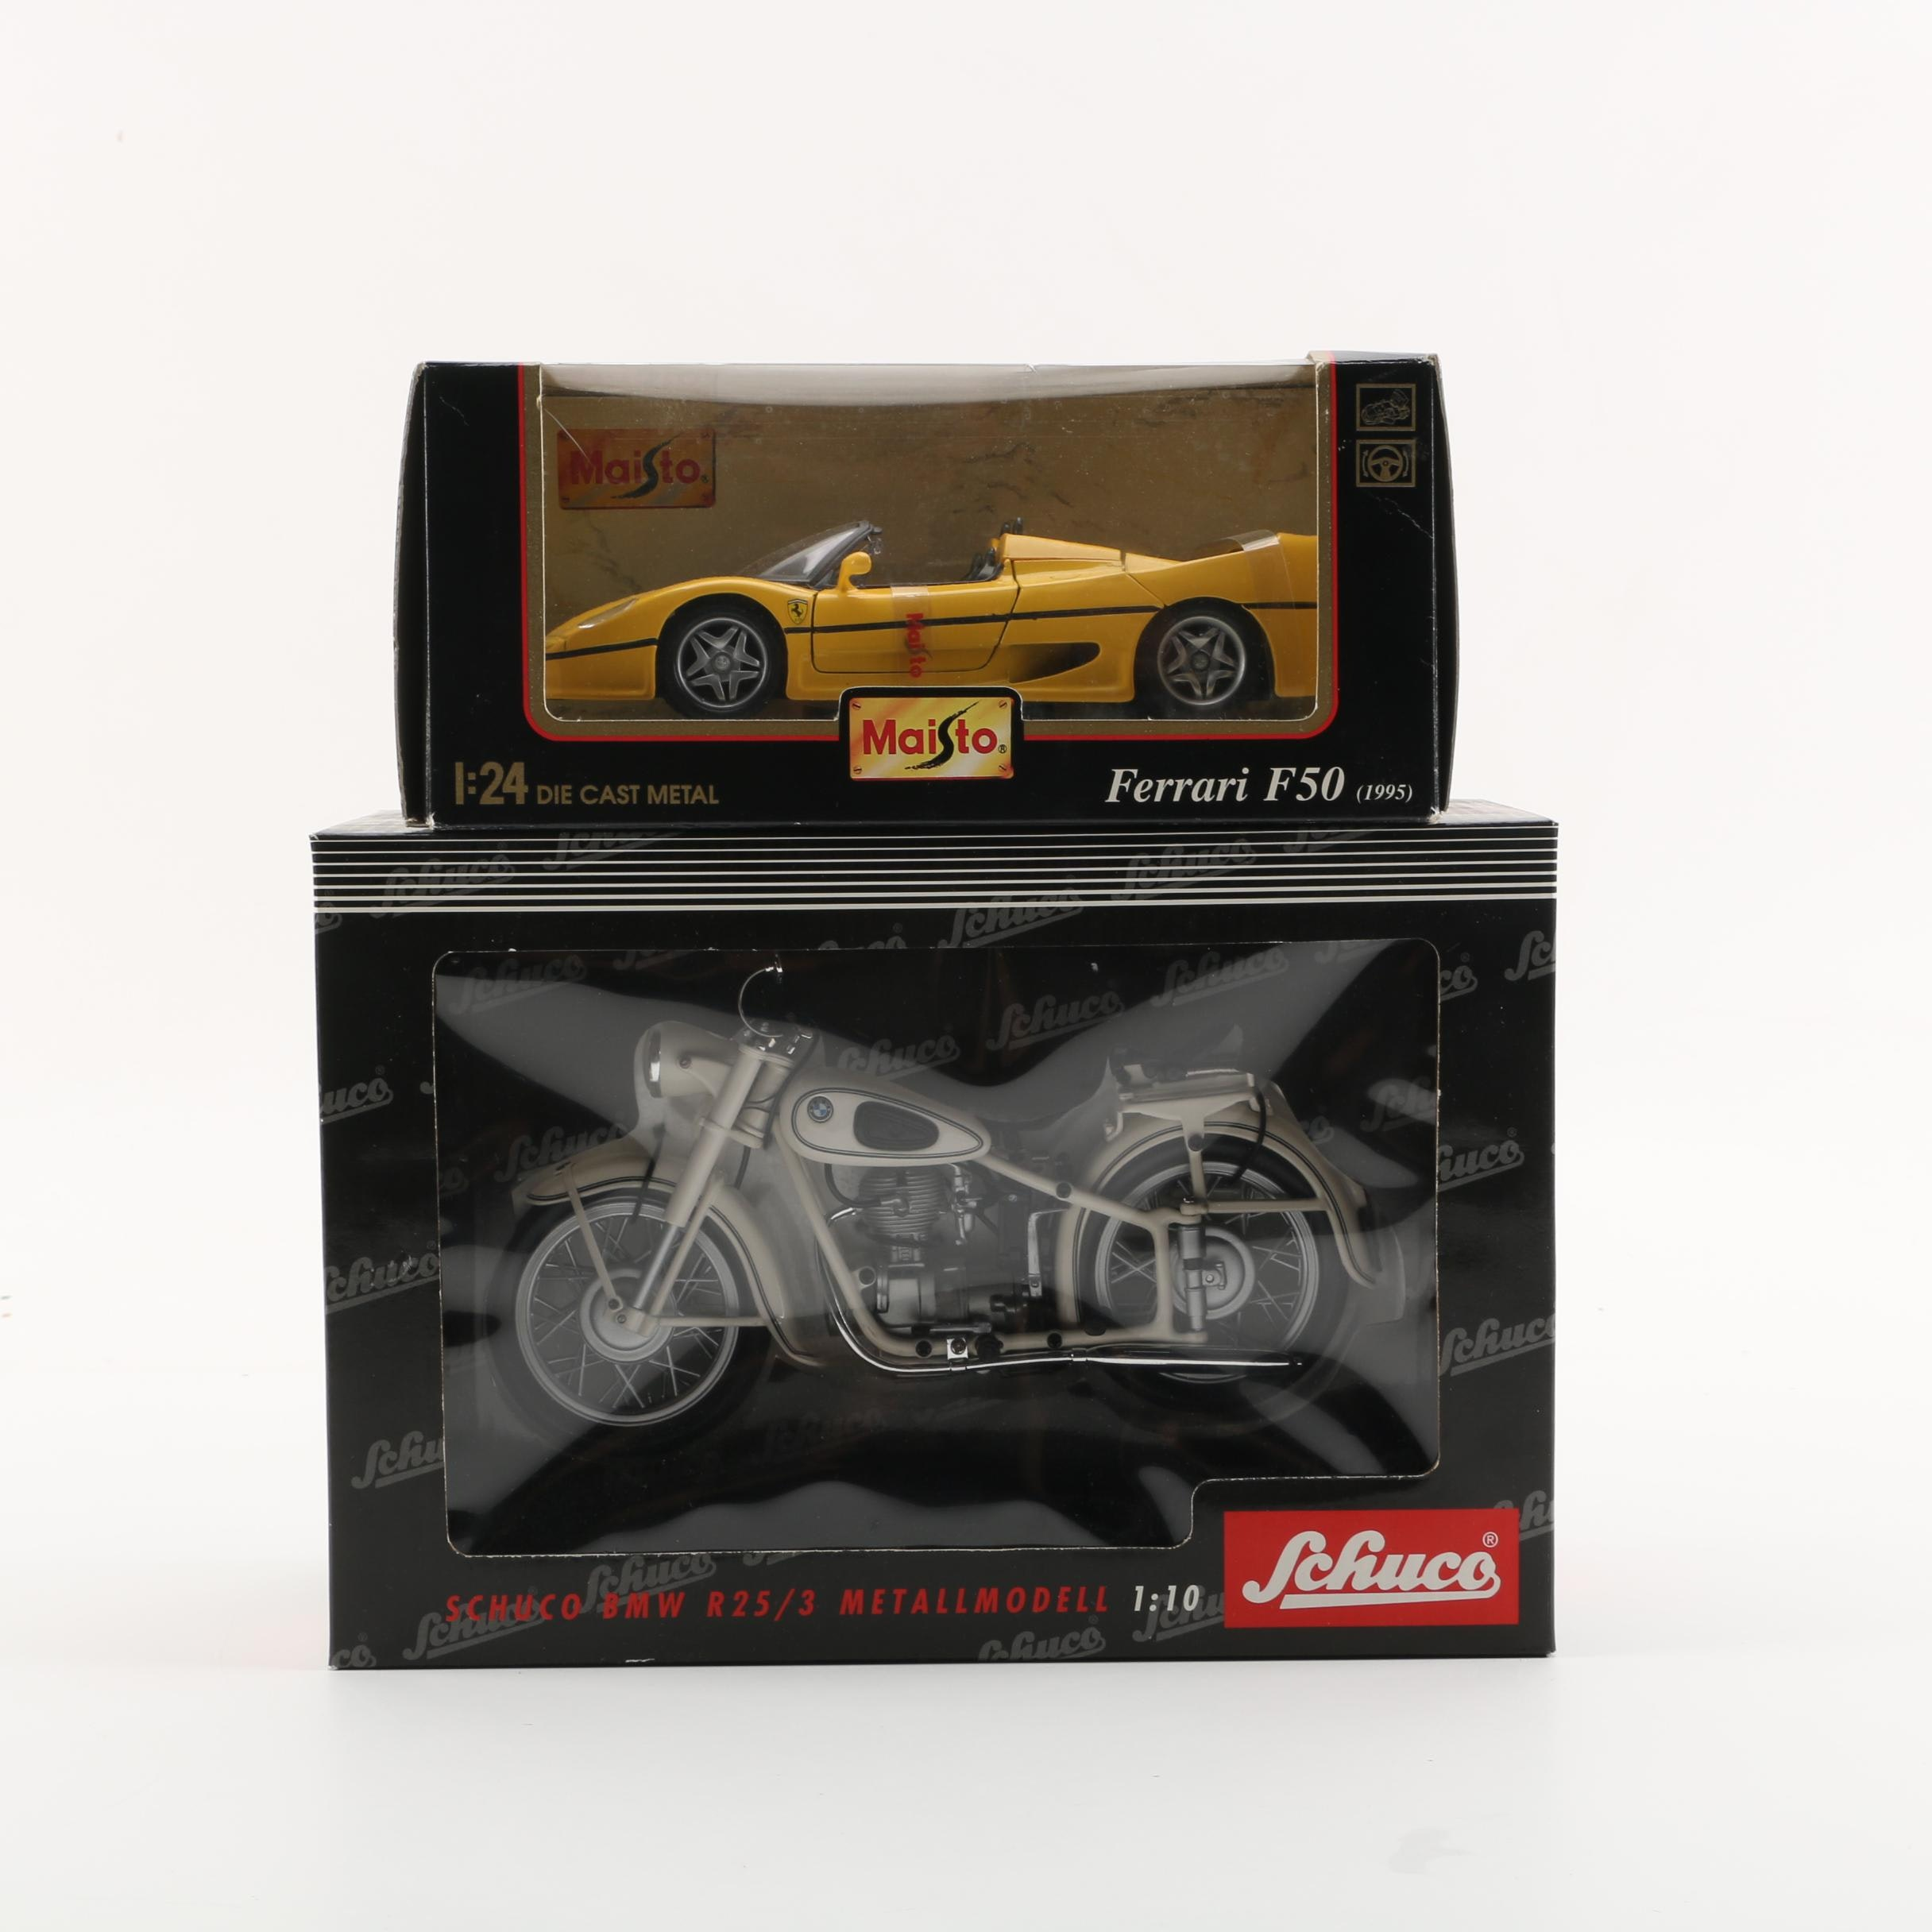 Schuco BMW R25/3 and Maisto Ferrari F50 Die-Cast Vehicles